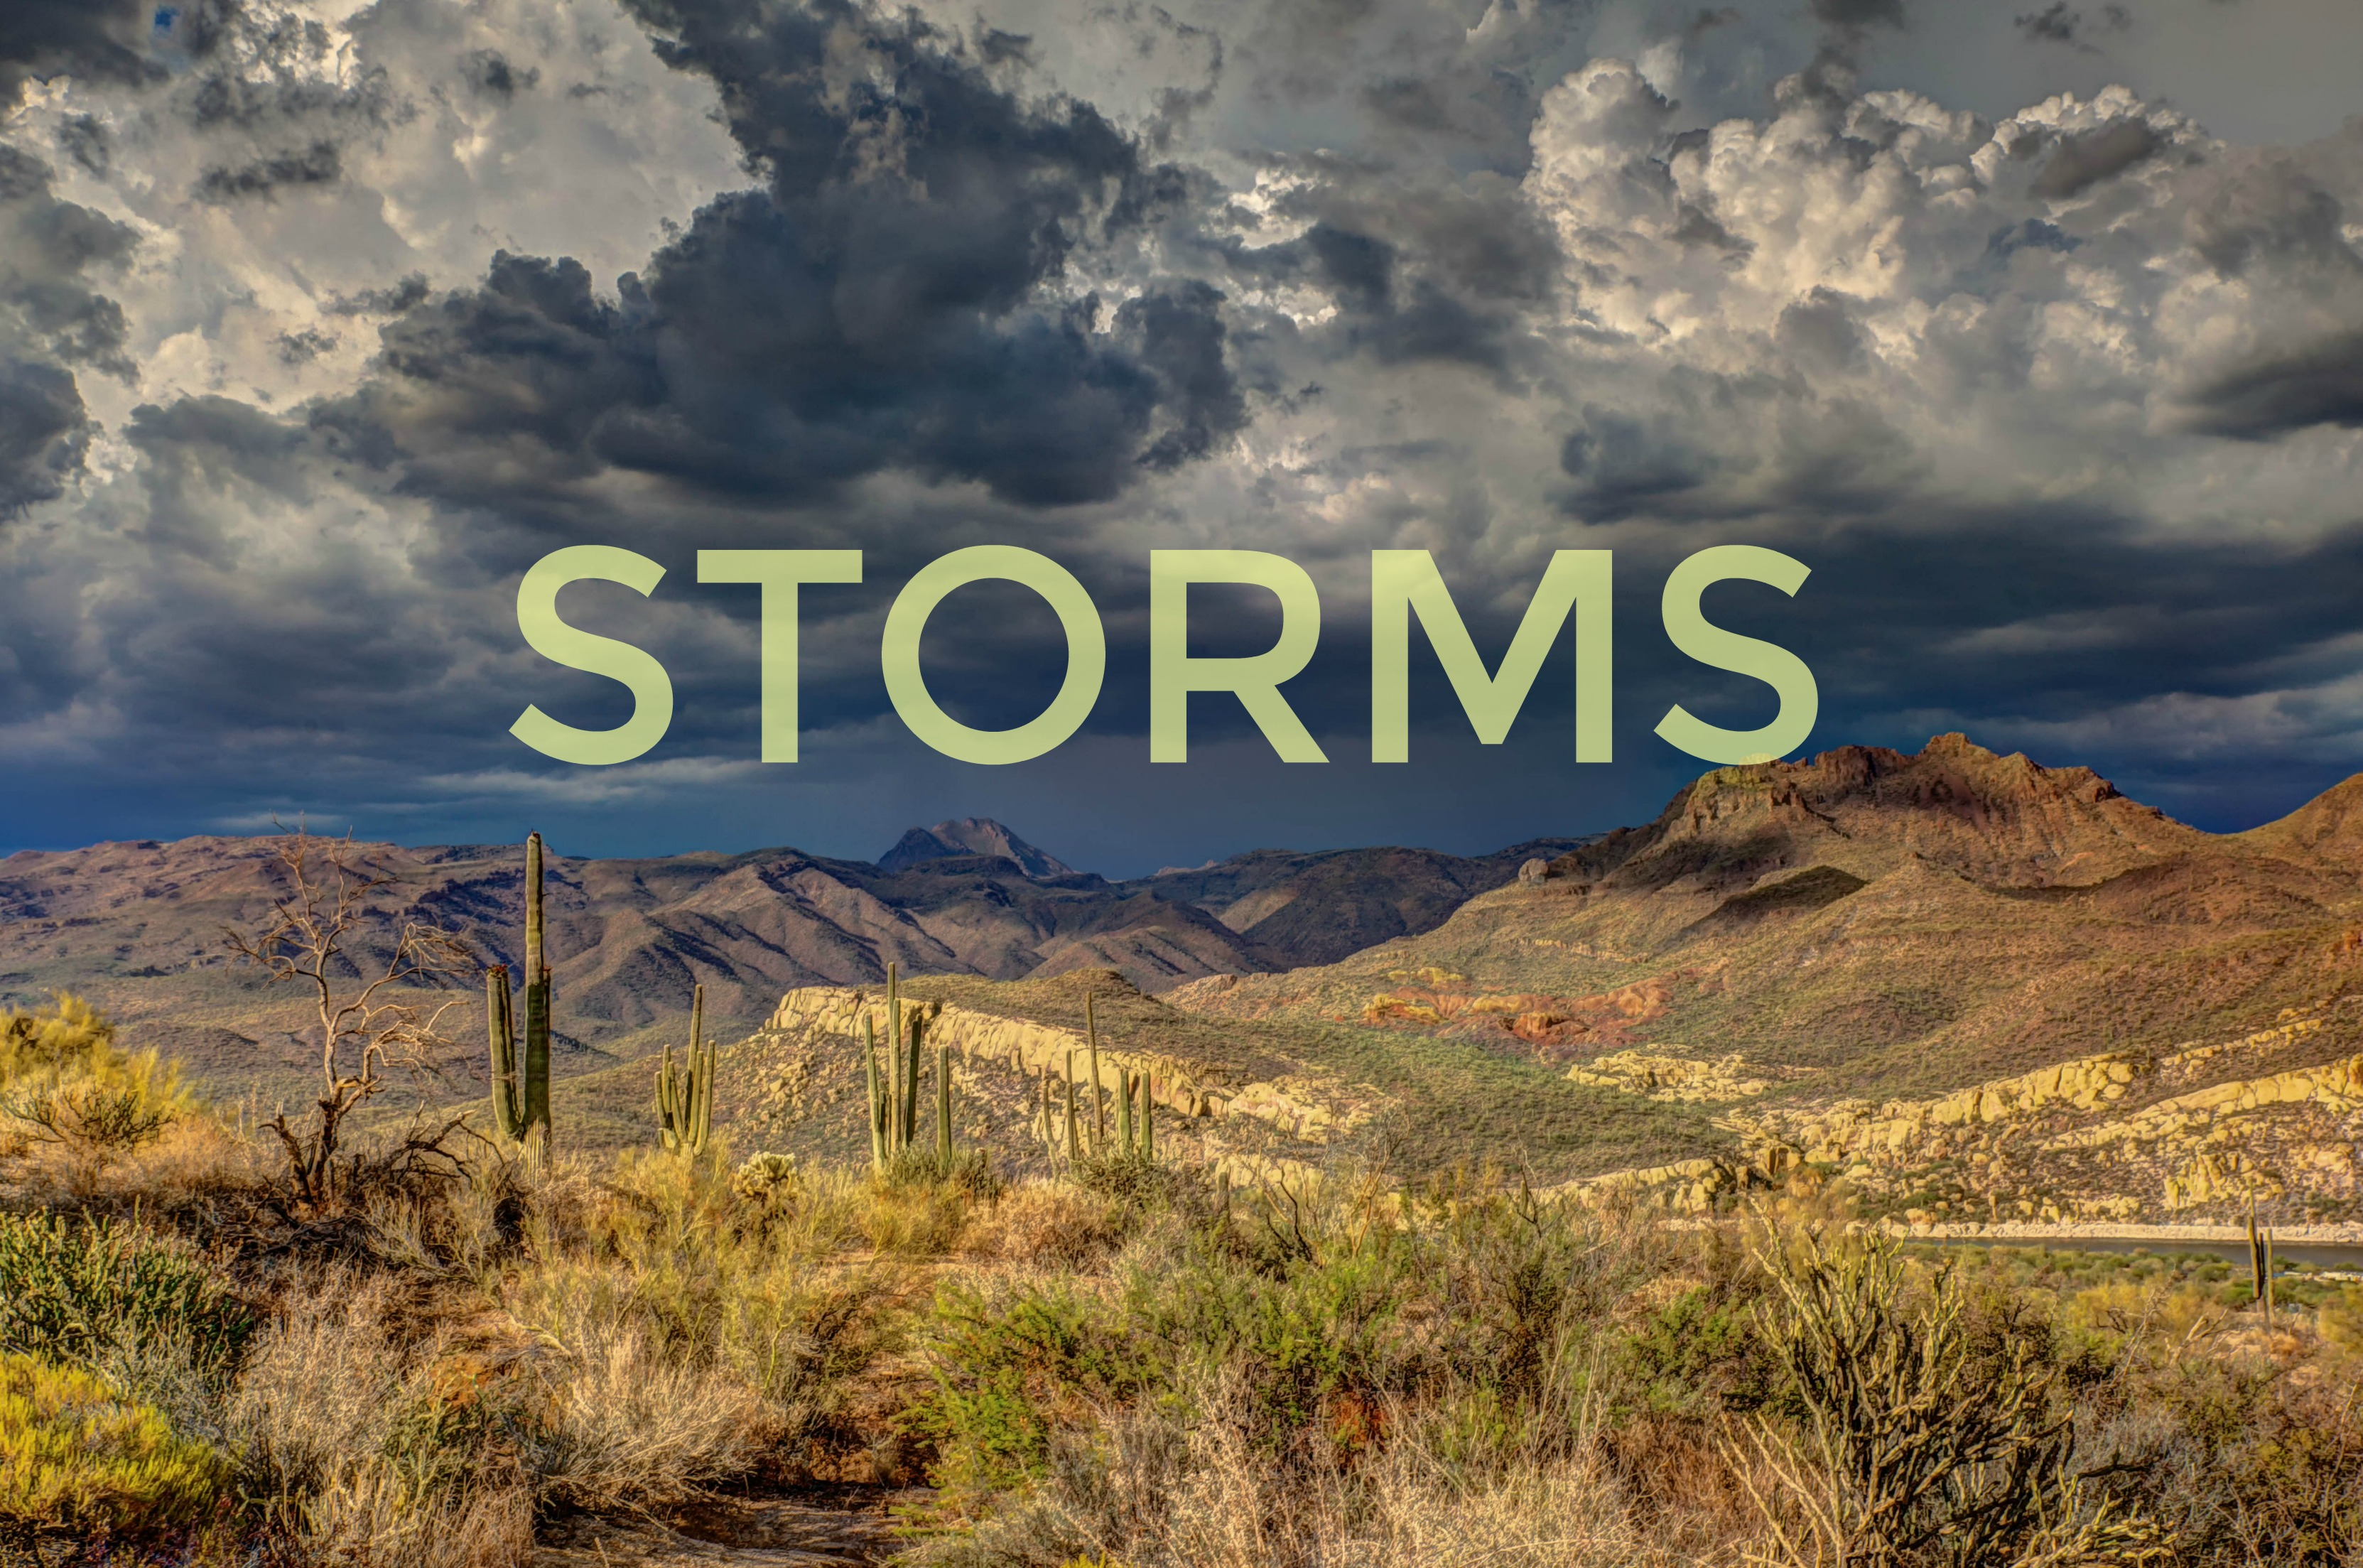 Storms-text